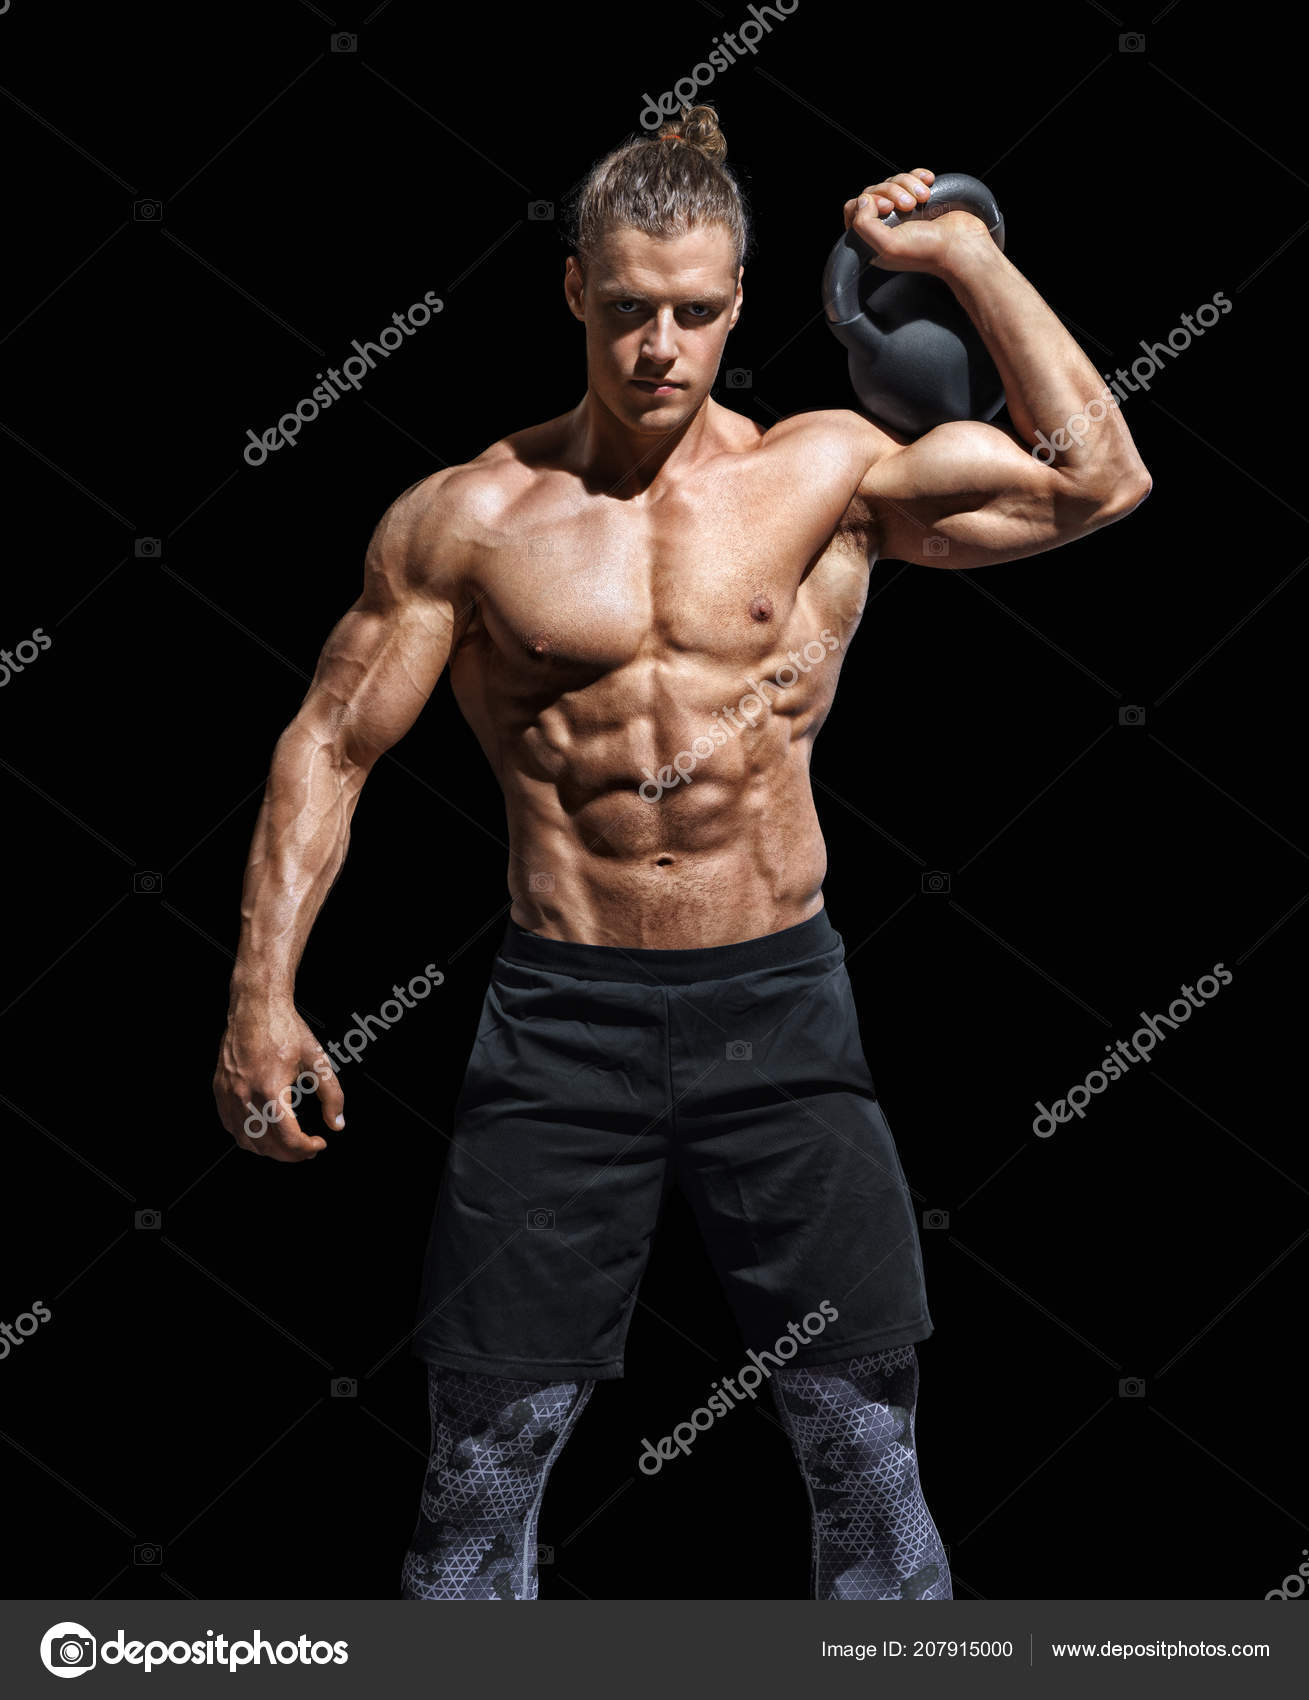 Kettlebell Bodybuilding Sporty Young Man Working Out Kettlebell Photo Muscular Man Perfect